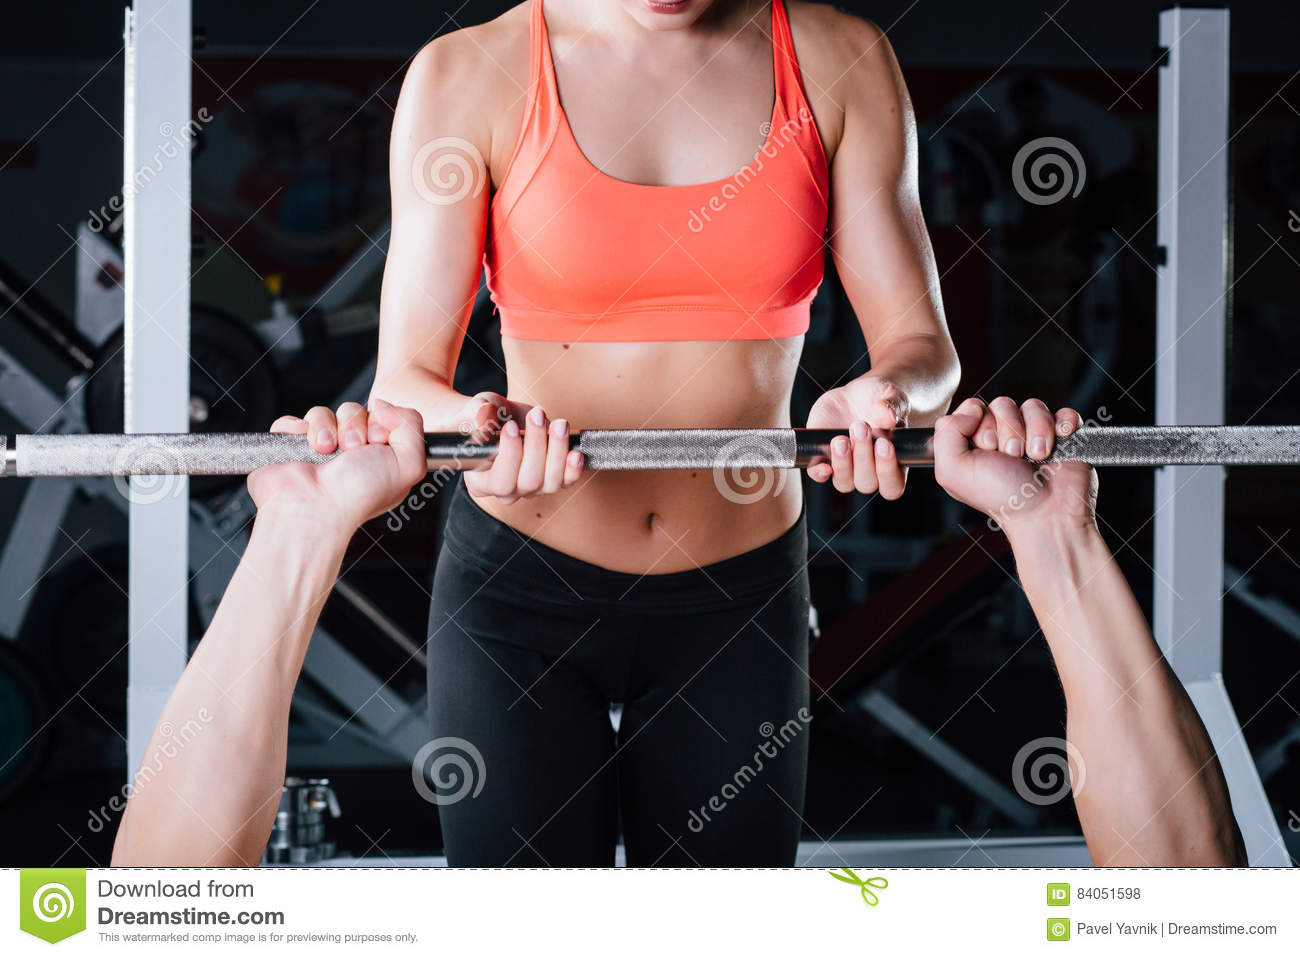 Sport, fitness, teamwork, weightlifting and people concept - young girl personal trainer work with man barbell